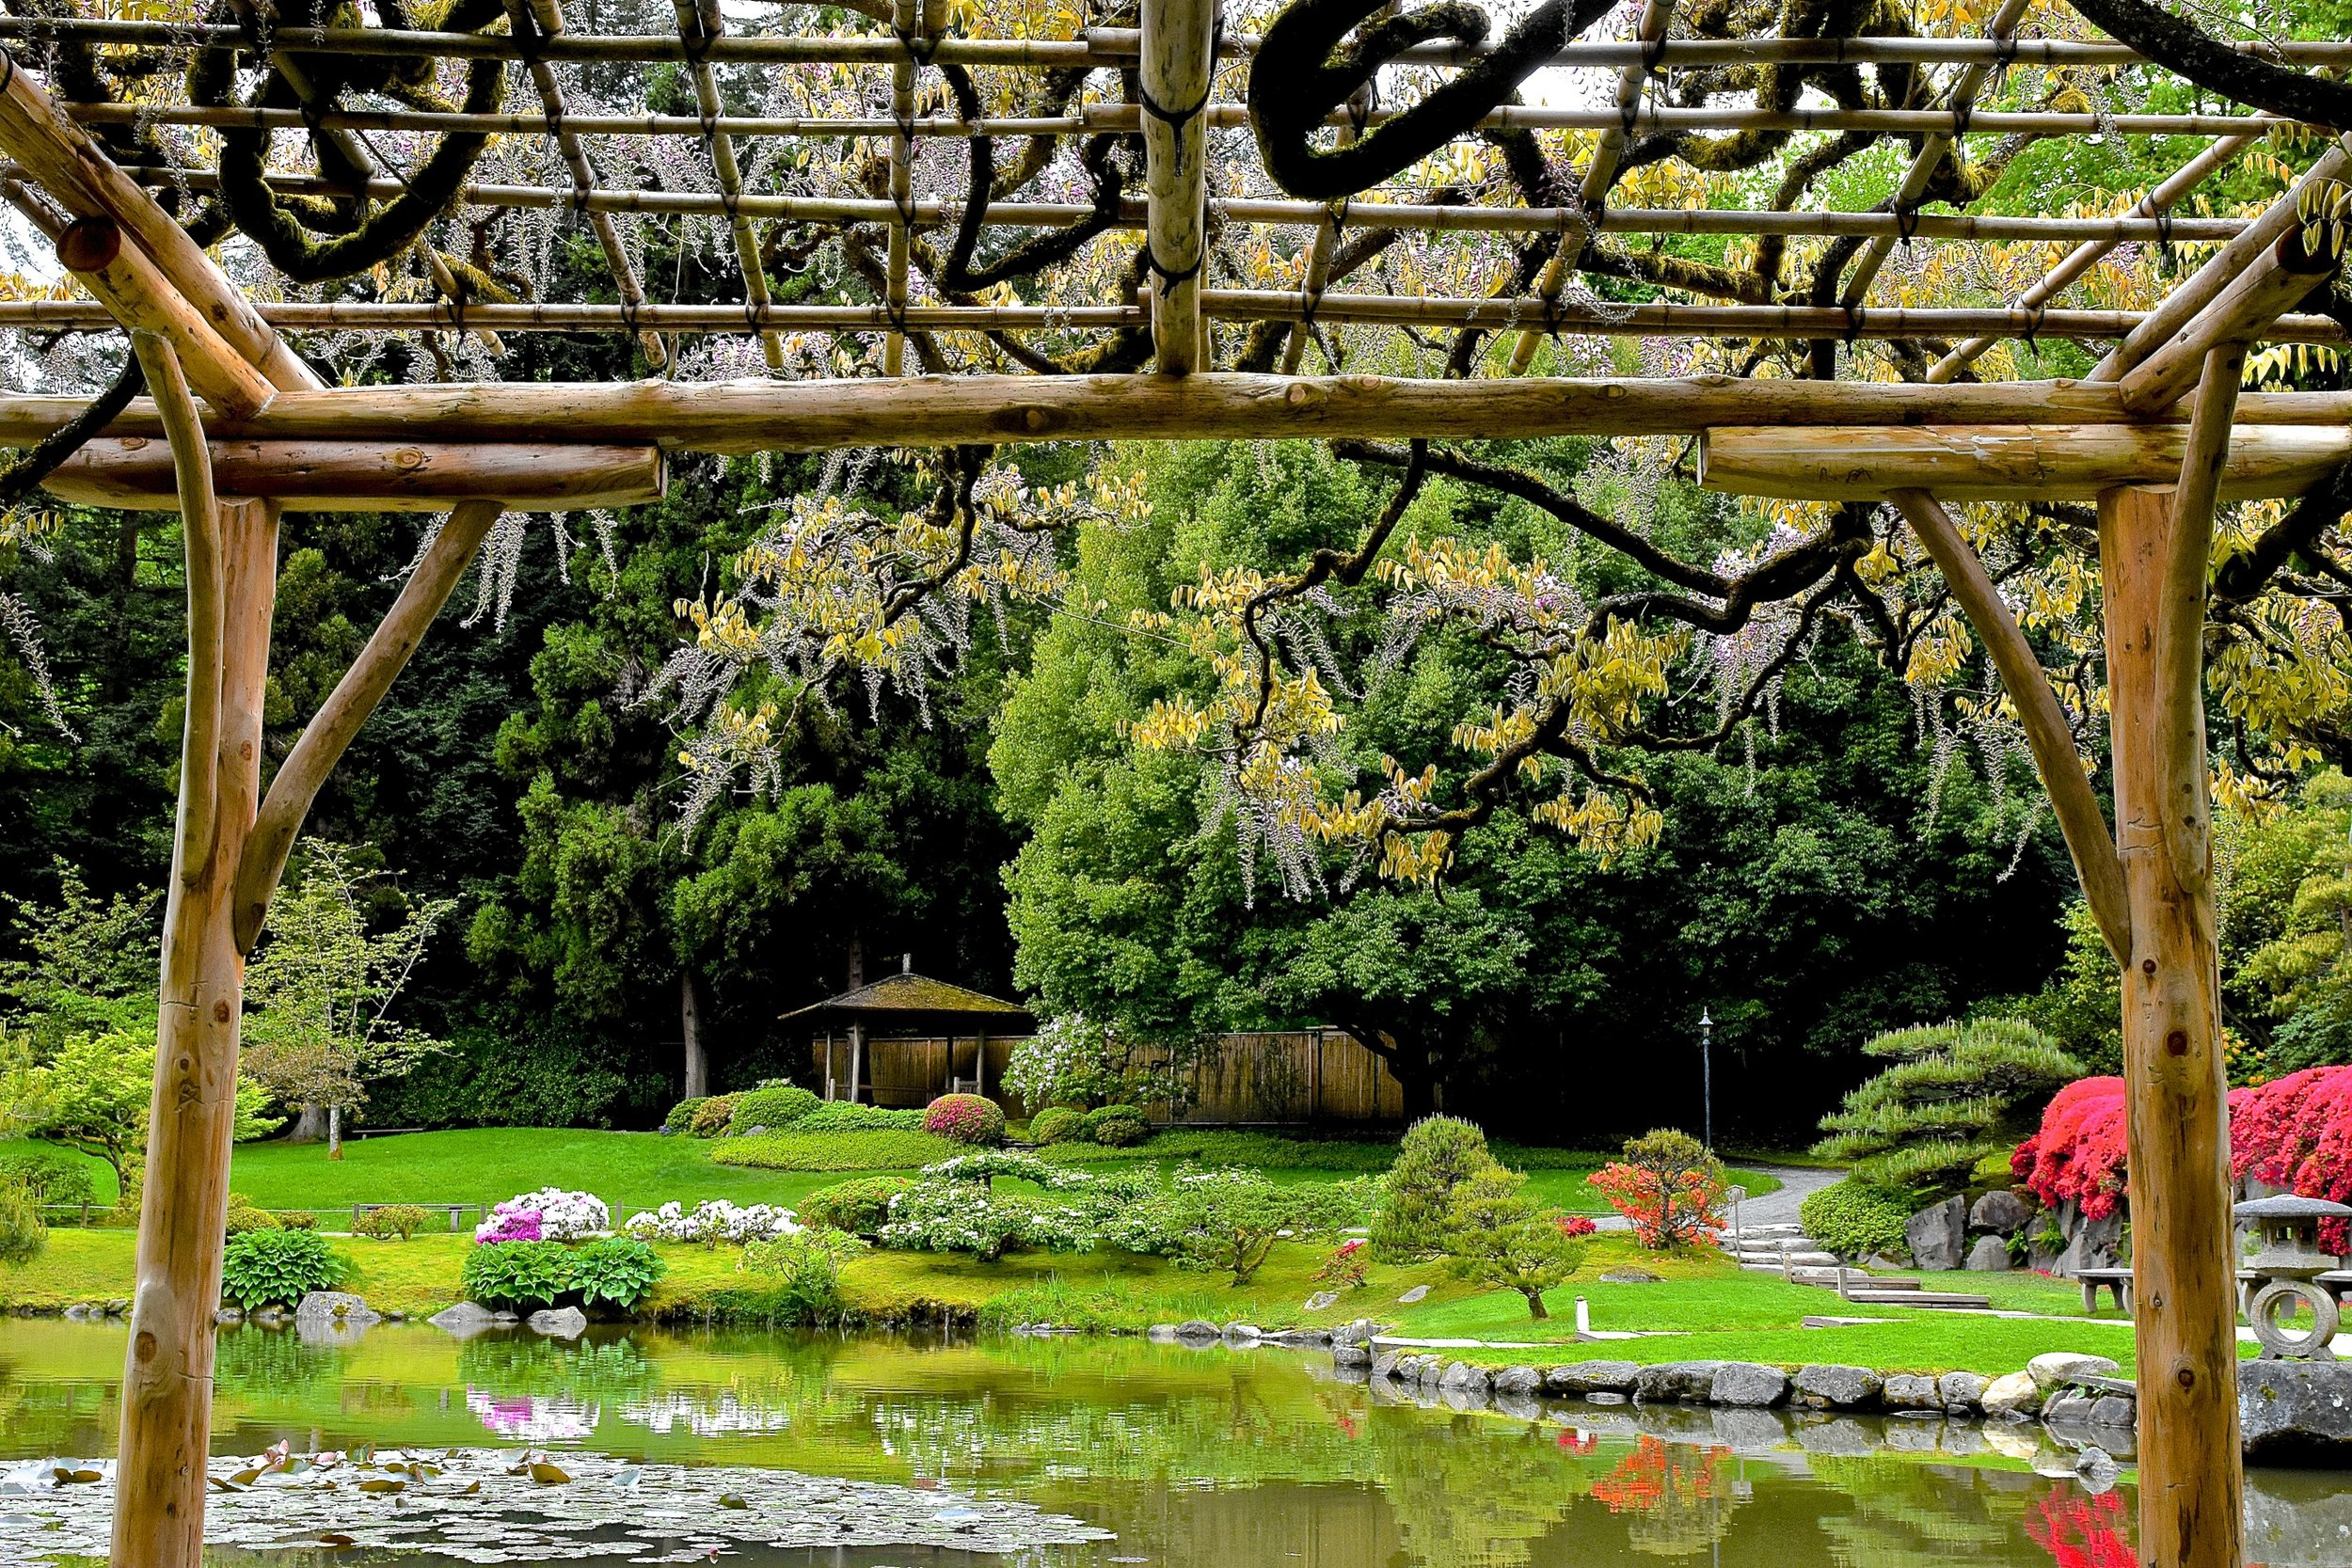 The more formal northern area of our garden, with the pond & wisteria arbor. A fishing village with harbor lantern is on the right, and an  azumaya  shelter is in the distance. (photo: Aurora Santiago)